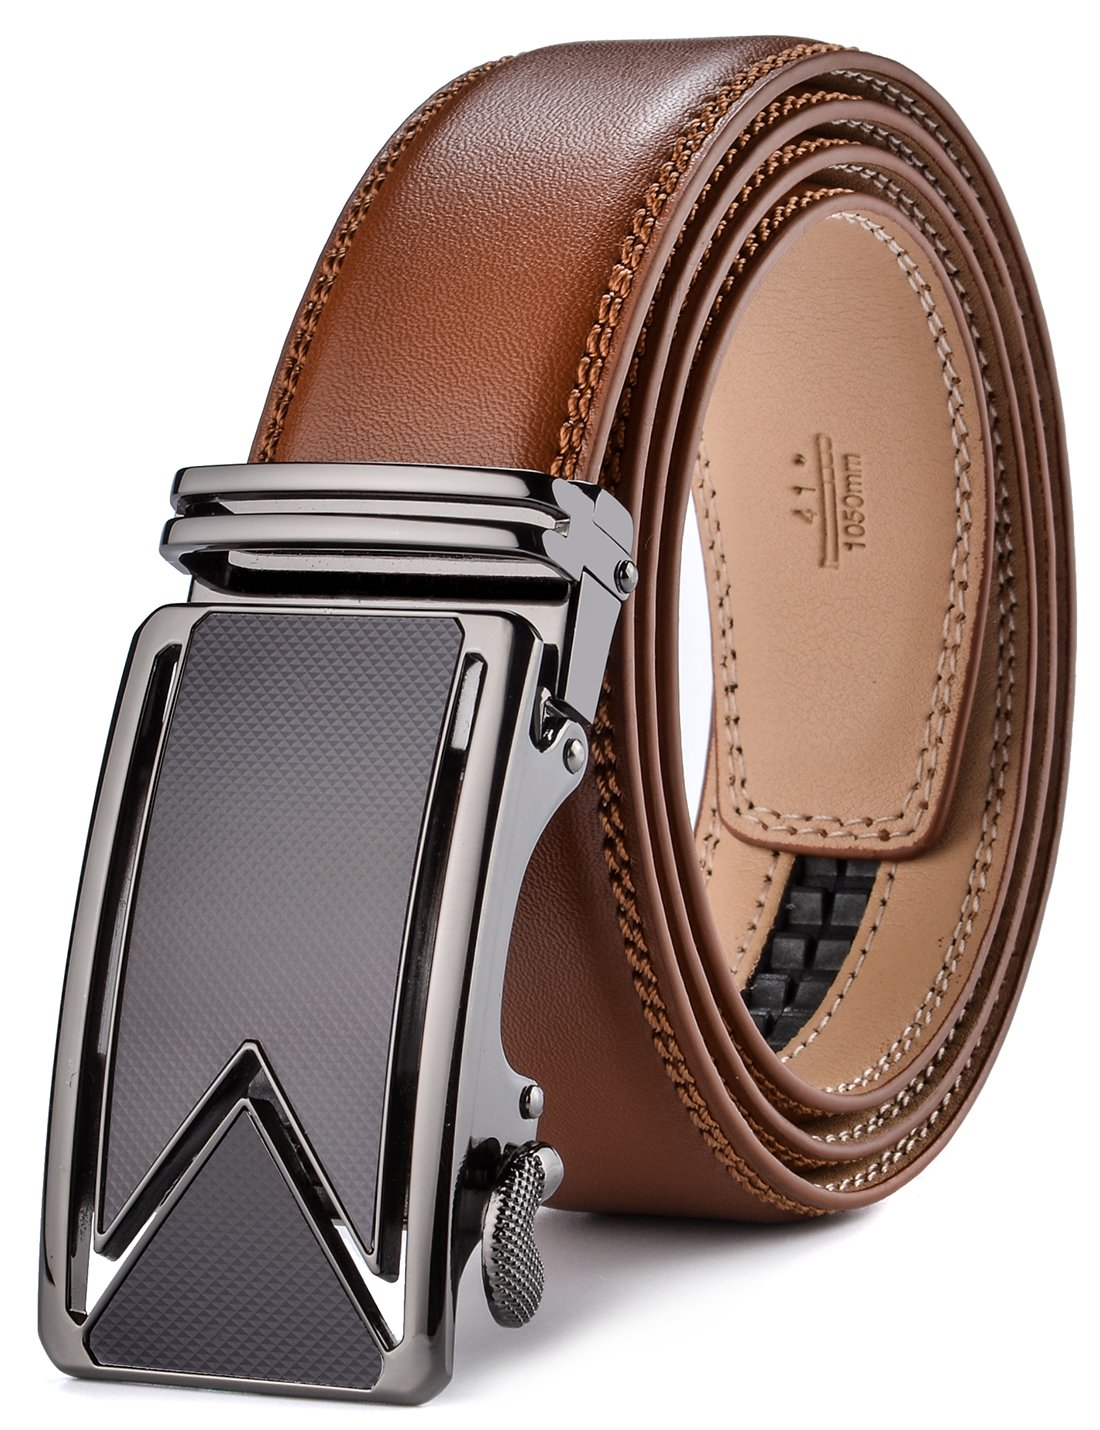 plyesxale Men's Belts Leather Ratchet Dress Belt with Automatic Buckle Gift Box (Tan strap with M buckle, Waist:26-36'')